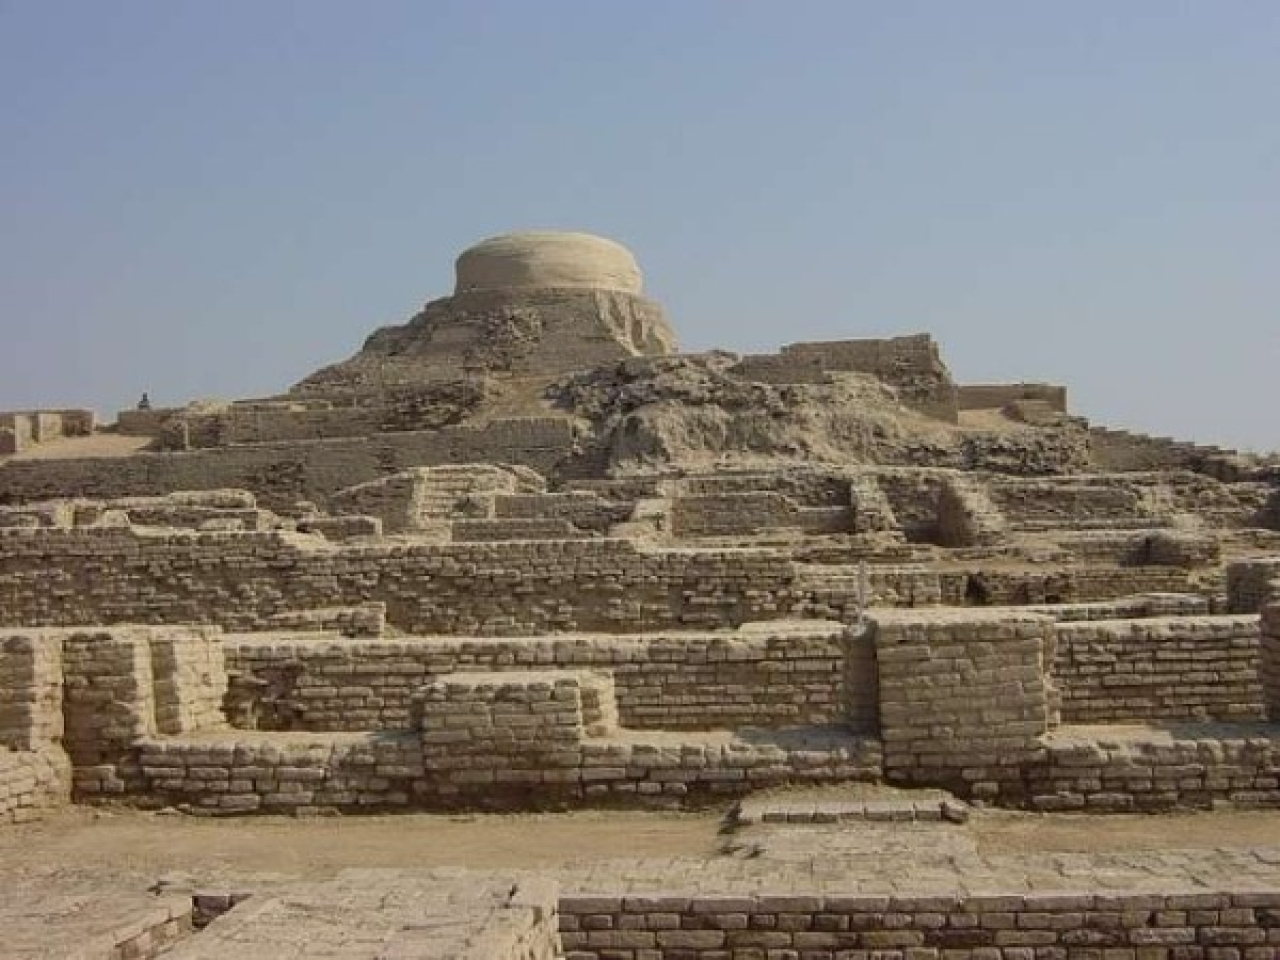 Archaeological ruins at Mohenjo-daro, one of the largest settlements of the Indus Valley civilisation. (UNESCO/Wikipedia)